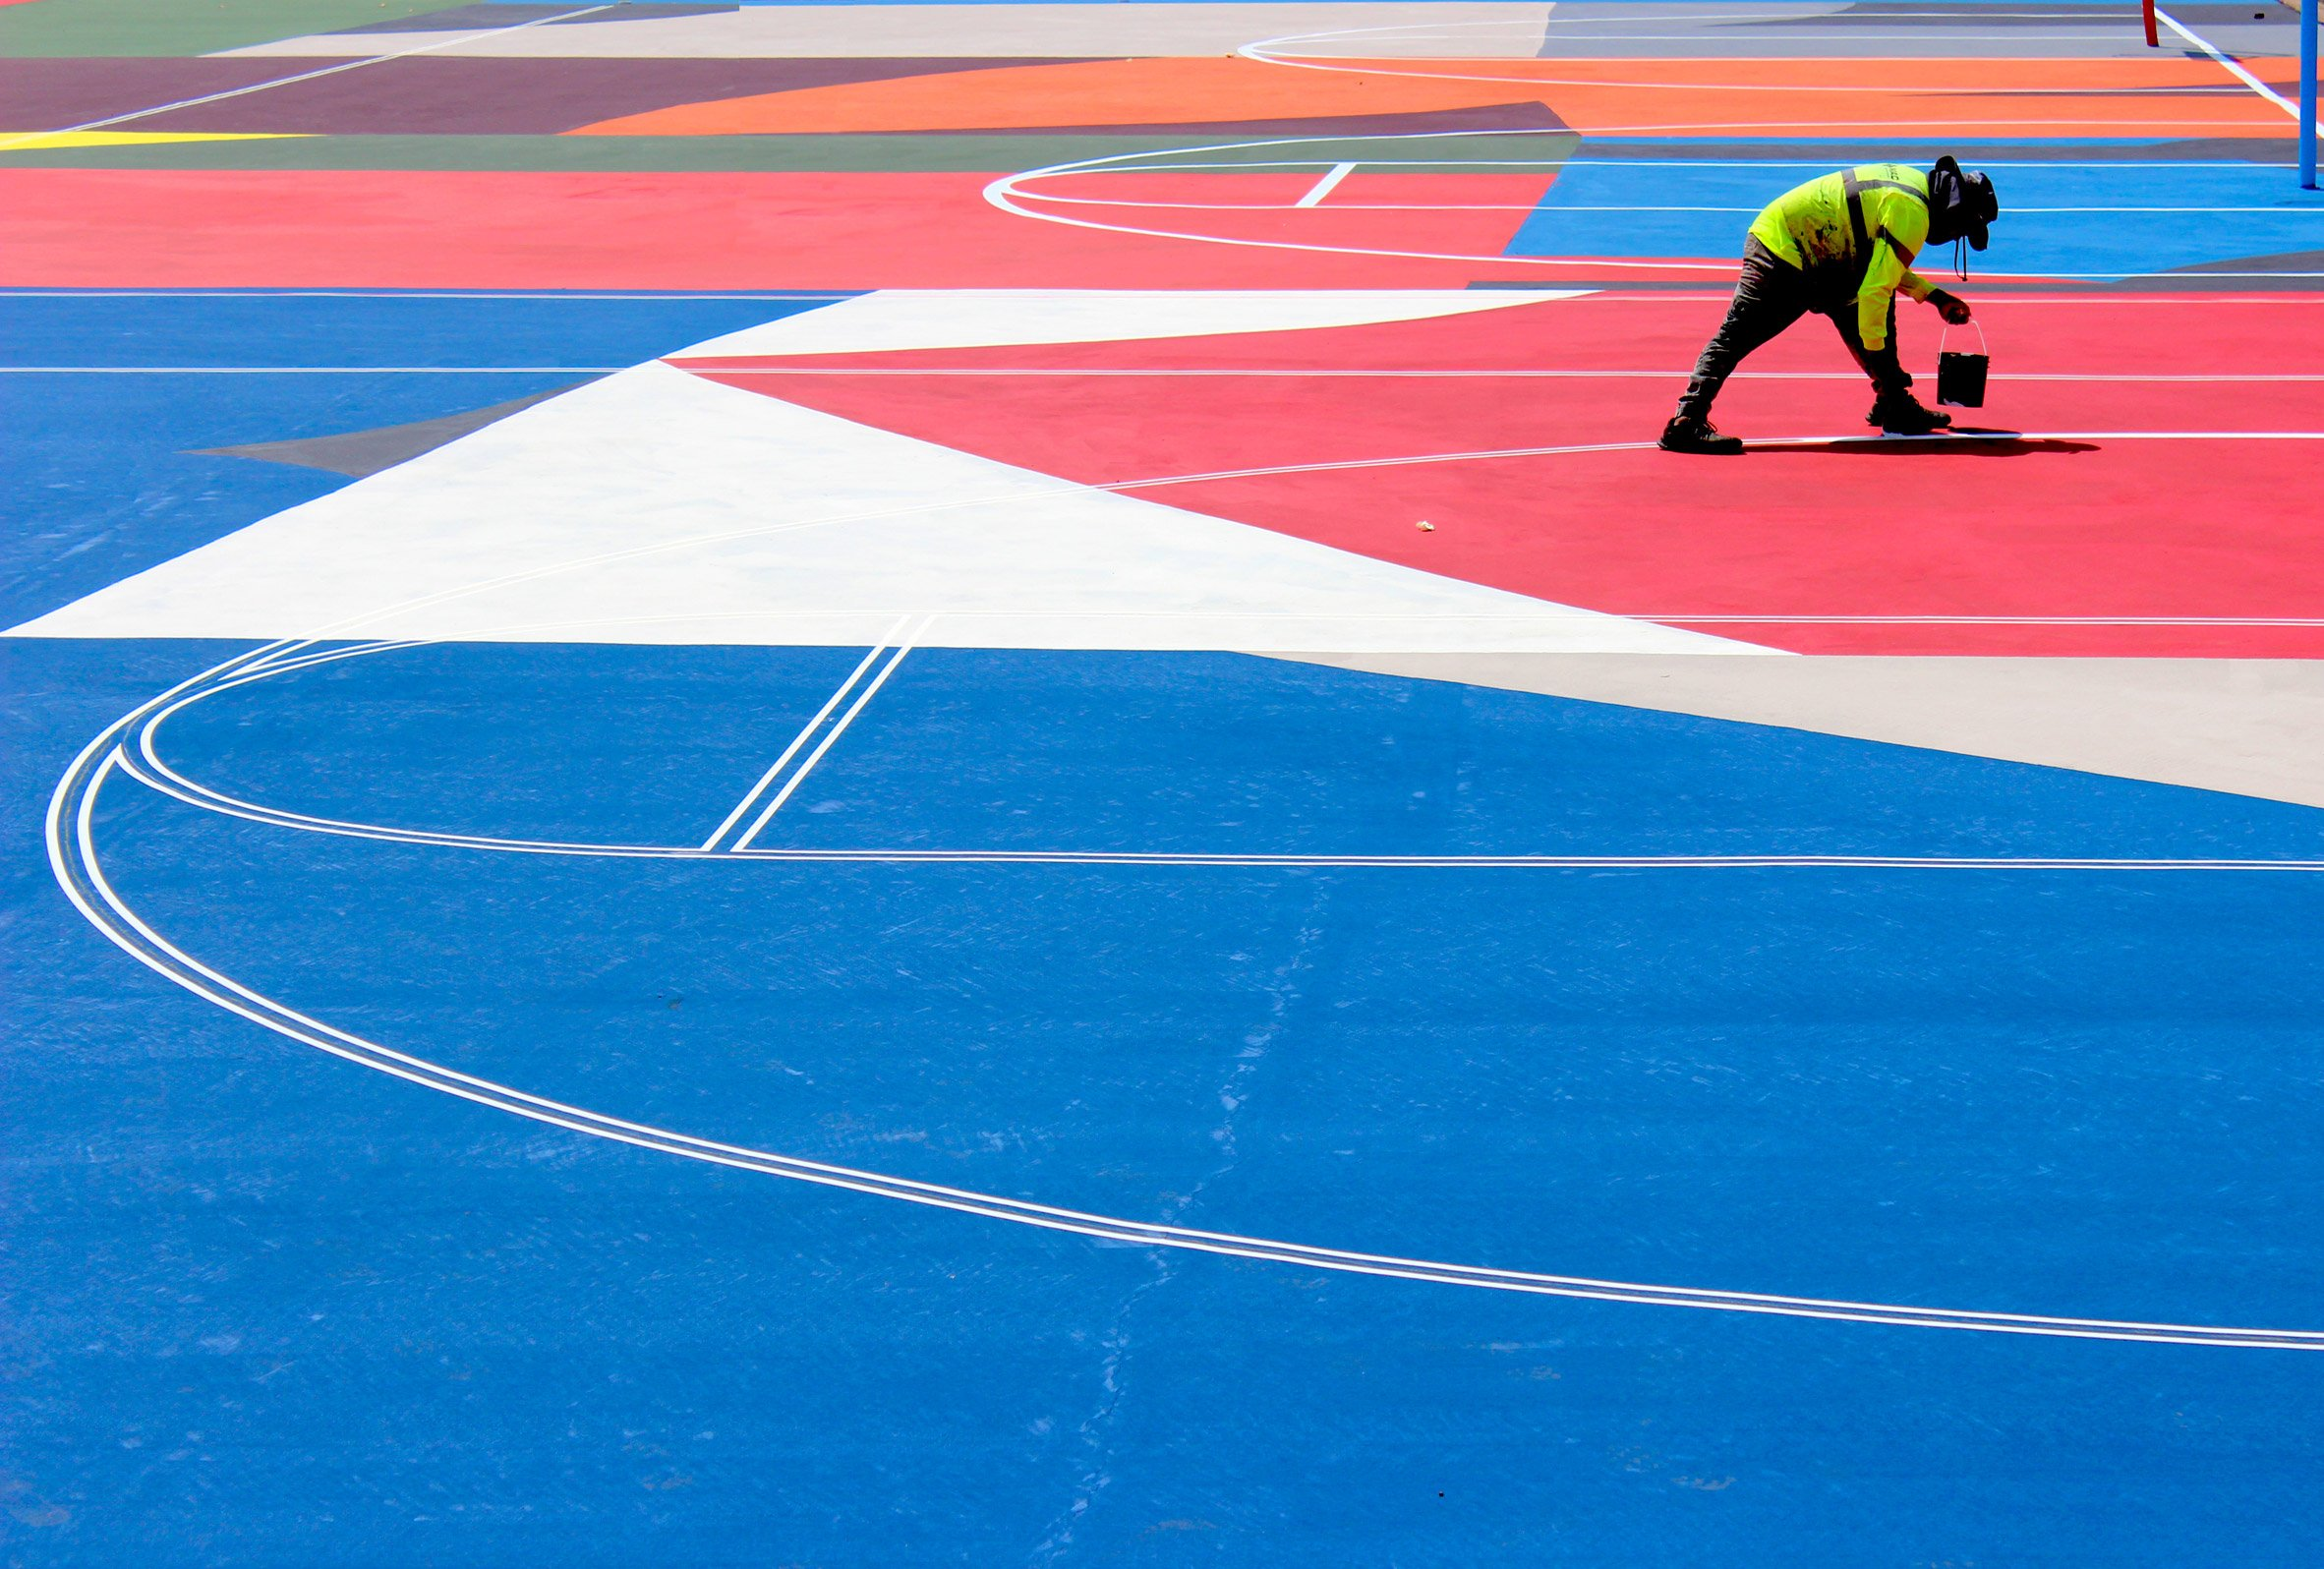 William lachance spruces up st louis basketball courts for Basketball court mural